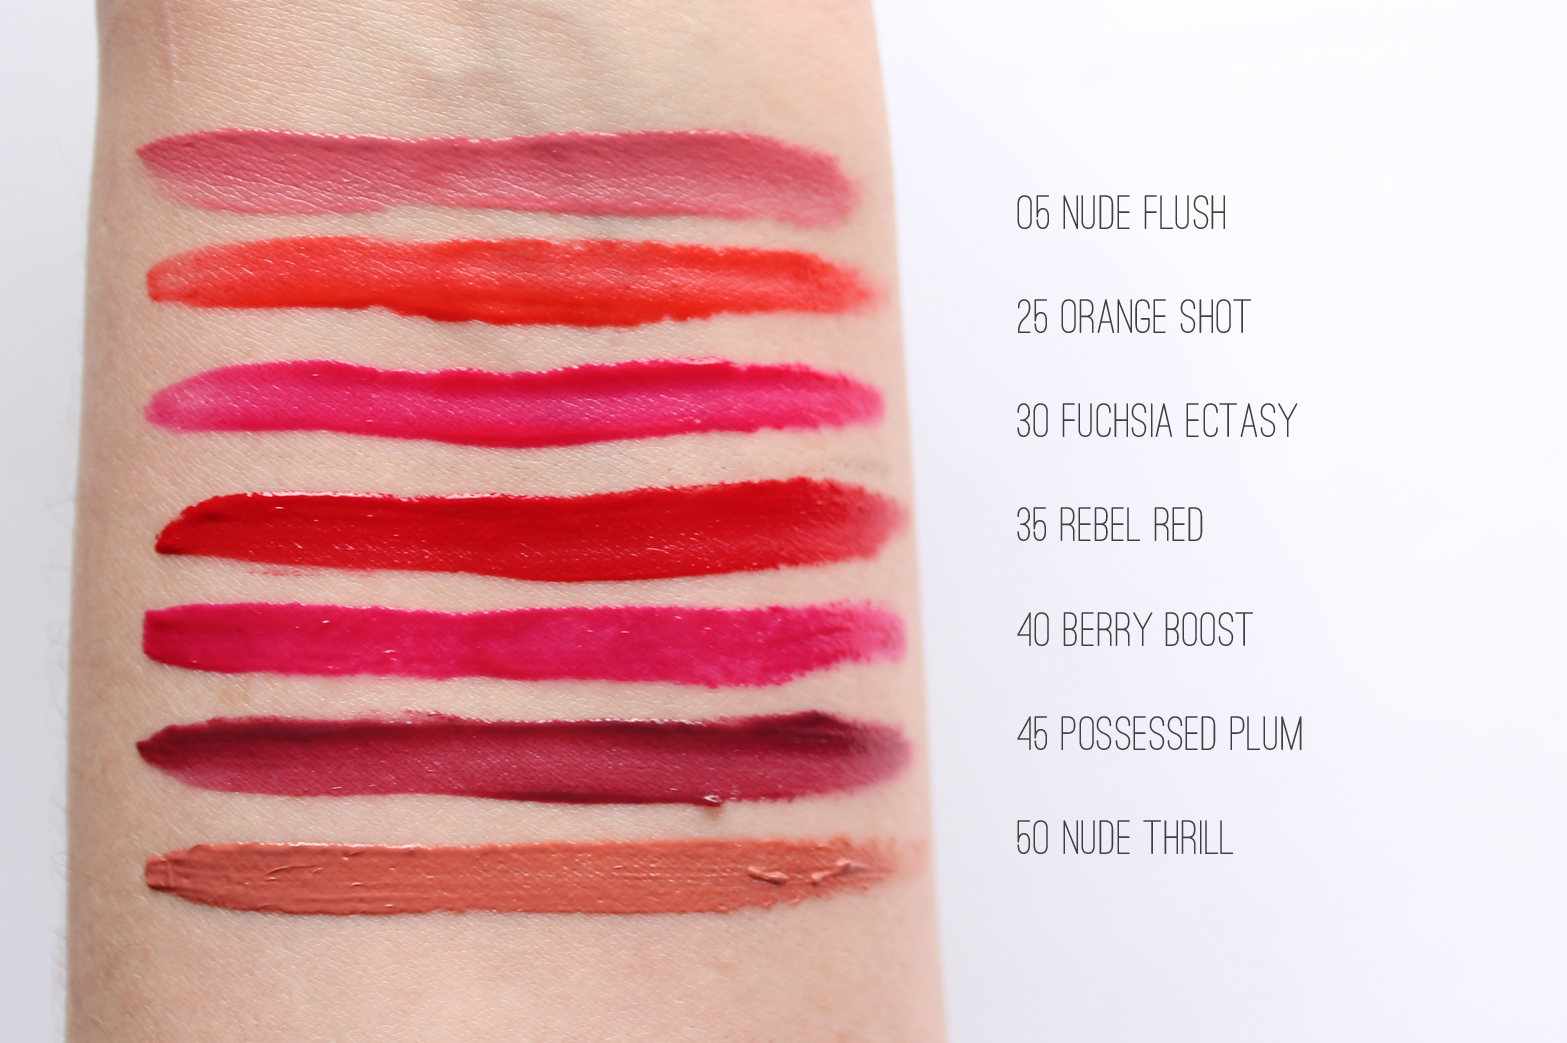 MAYBELLINE | Color Sensational Vivid Liquid Matte Lipsticks - Review + Swatches - CassandraMyee